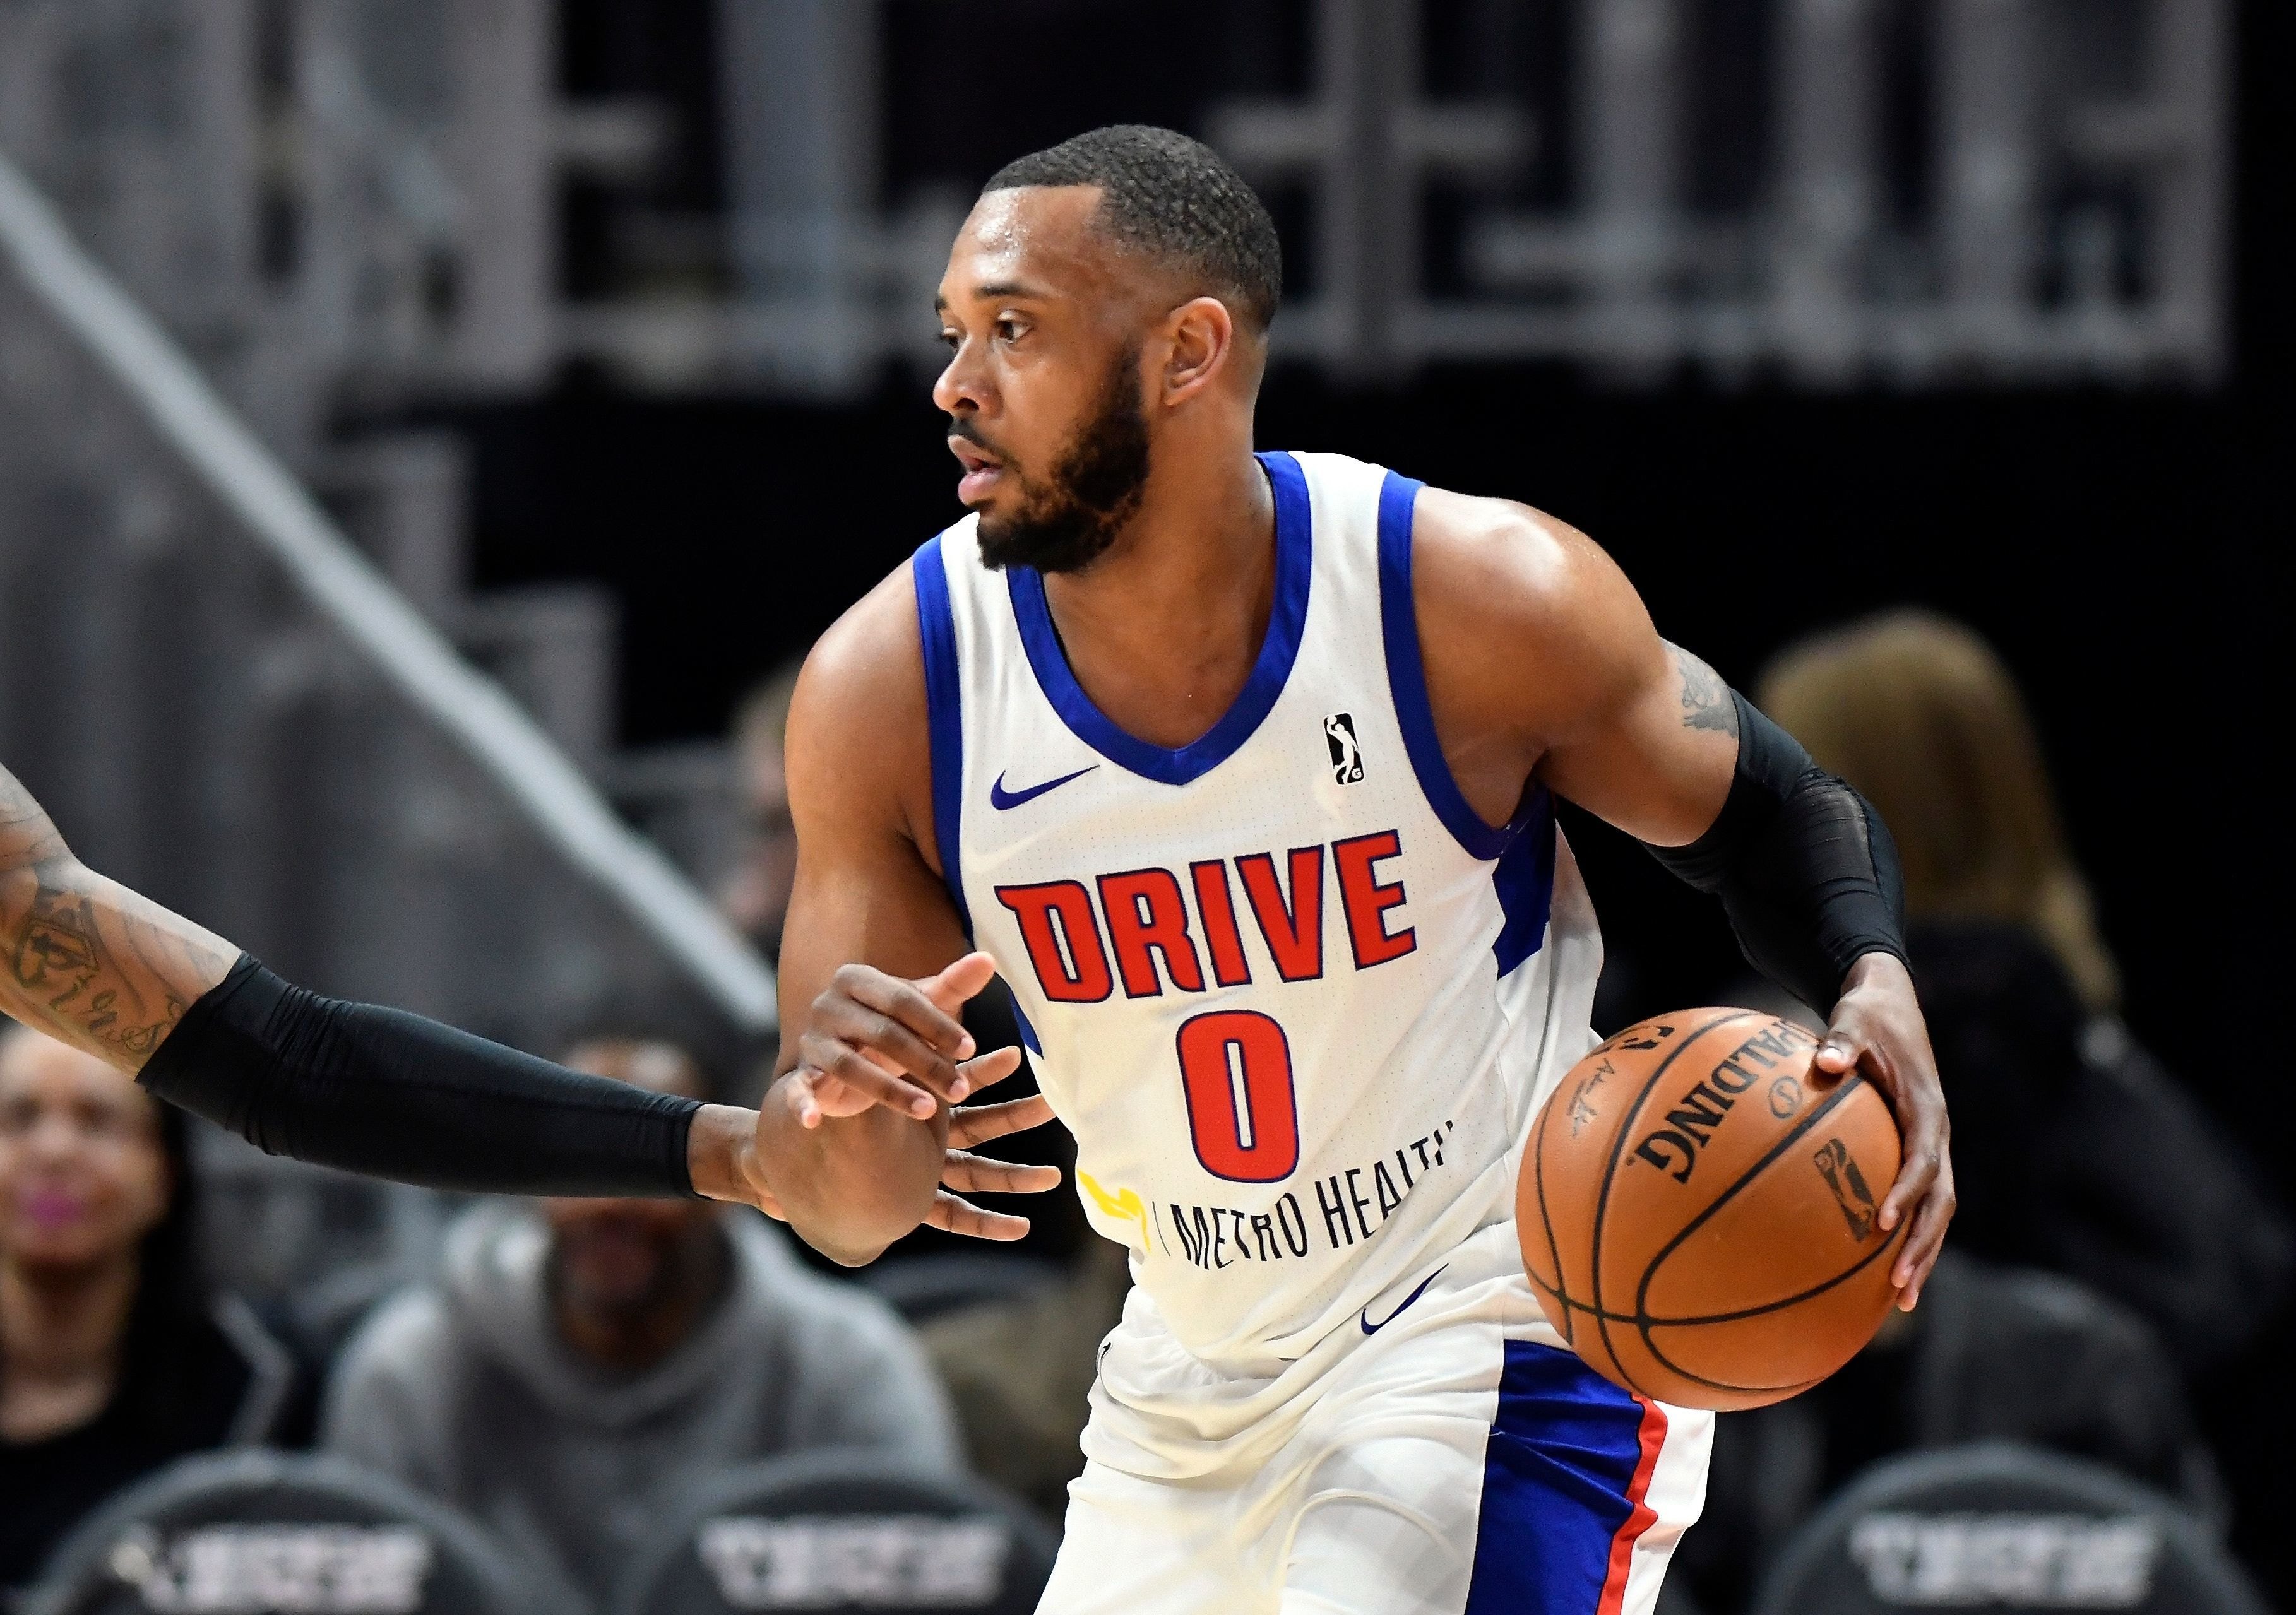 In a photo from Feb. 28, 2018, Grand Rapids Drive forward Zeke Upshaw looks to pass during a basketball game in Detroit. Upshaw, the Detroit Pistons developmental player who collapsed on the court during a NBA G League game in Michigan has died.